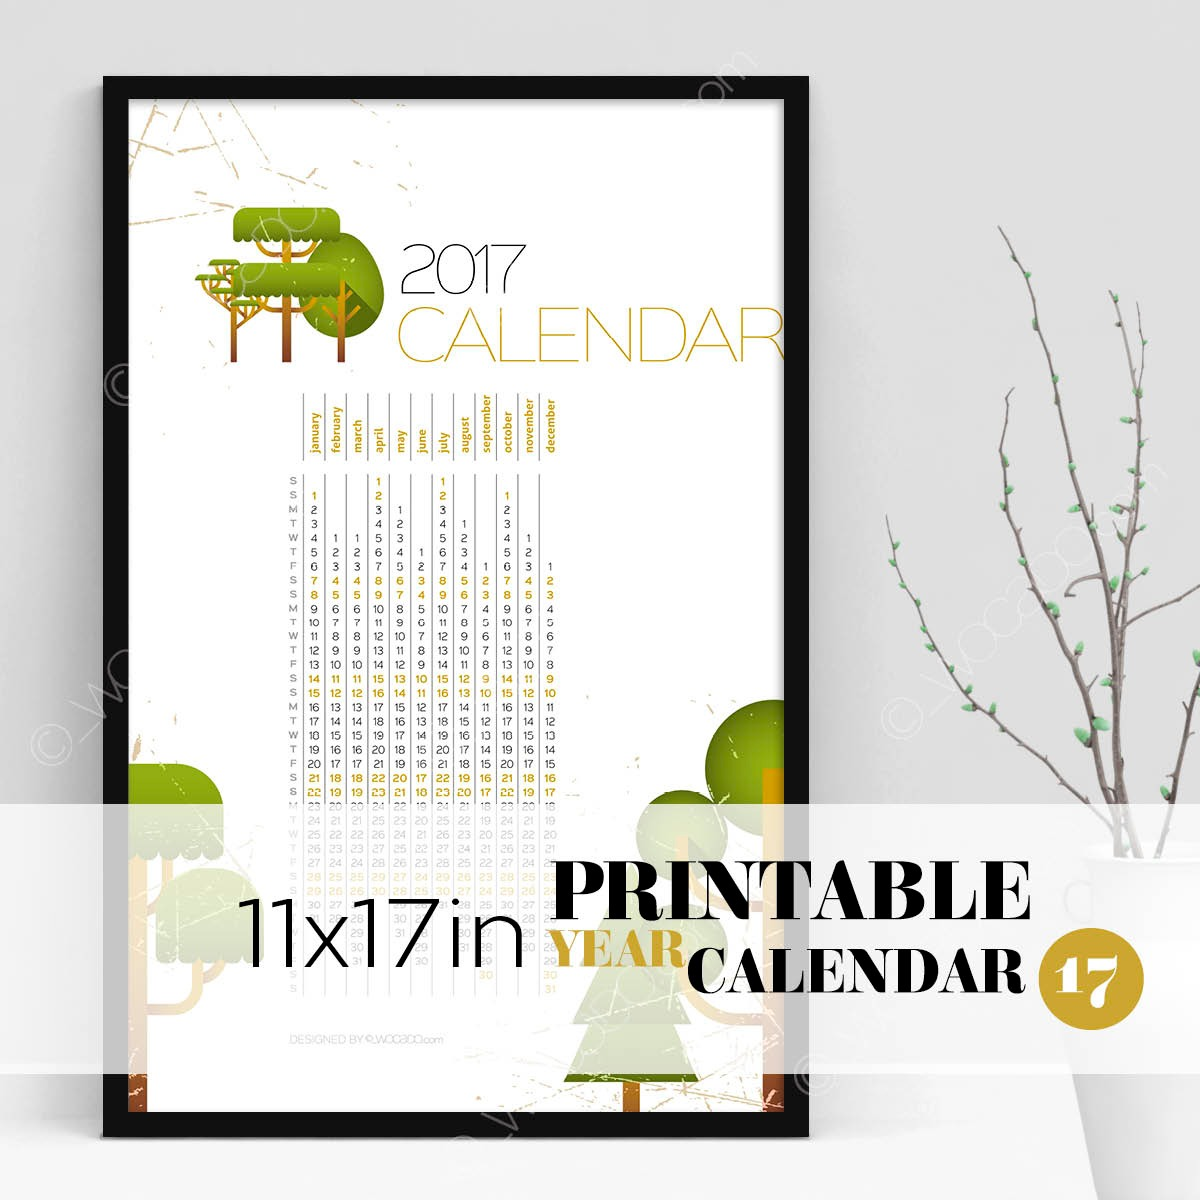 Top Of The Tree – Full Year Printable Calendar 2017 - 11x17 Poster, Tree sketches, Designer Style